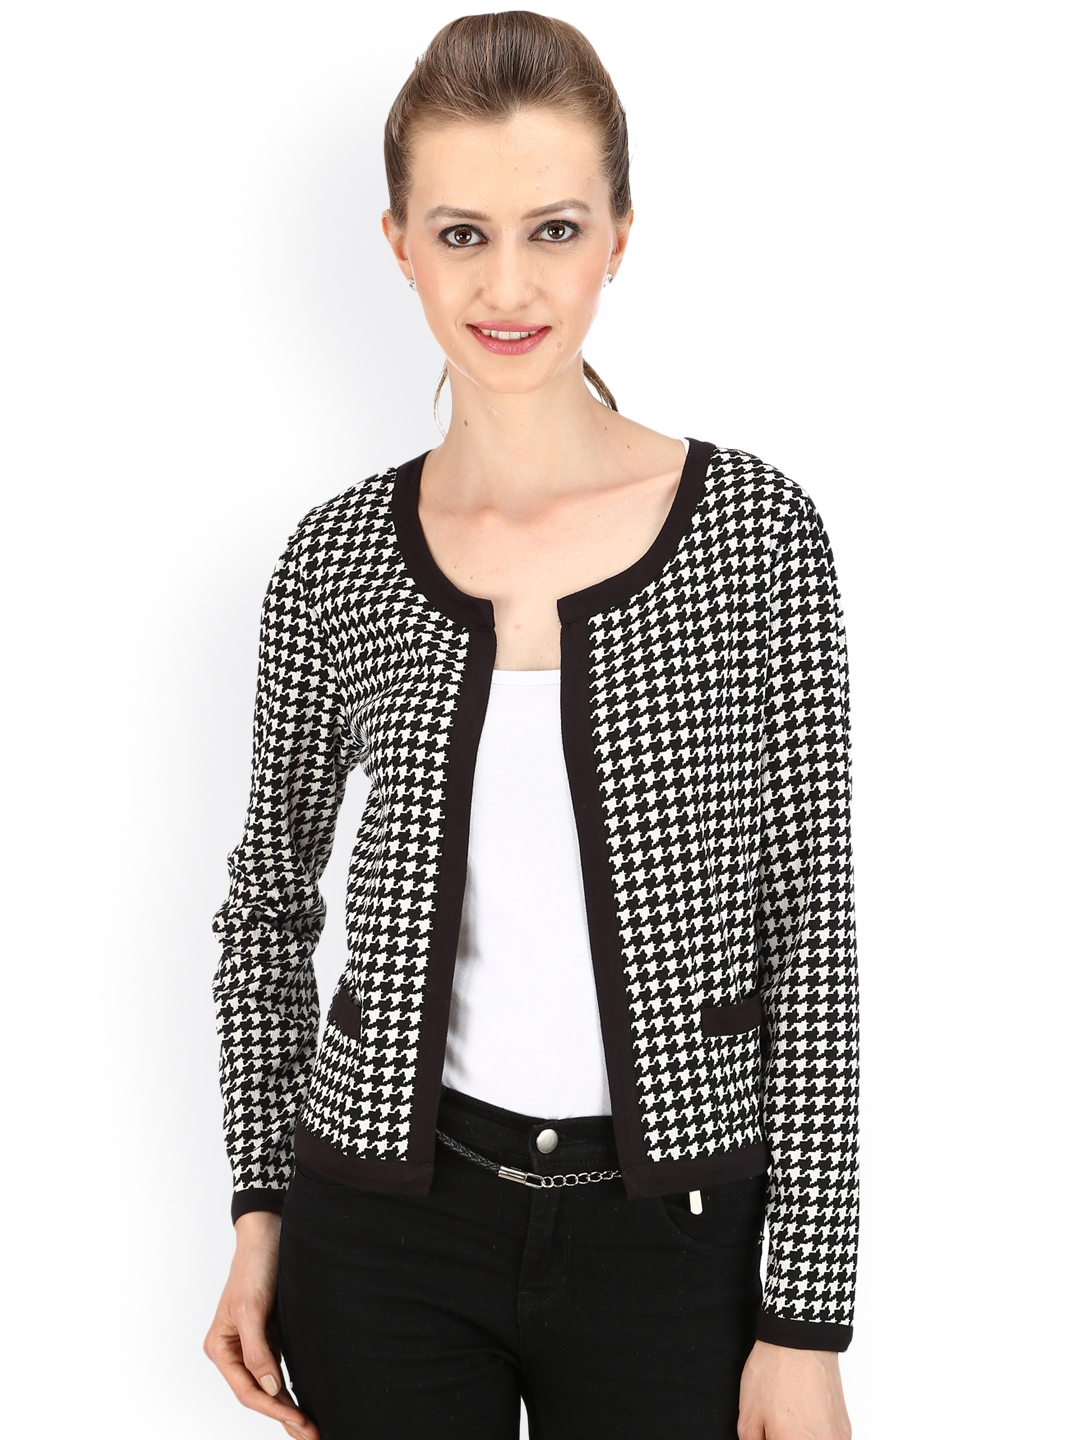 buy street 9 black houndstooth printed blazer blazers. Black Bedroom Furniture Sets. Home Design Ideas